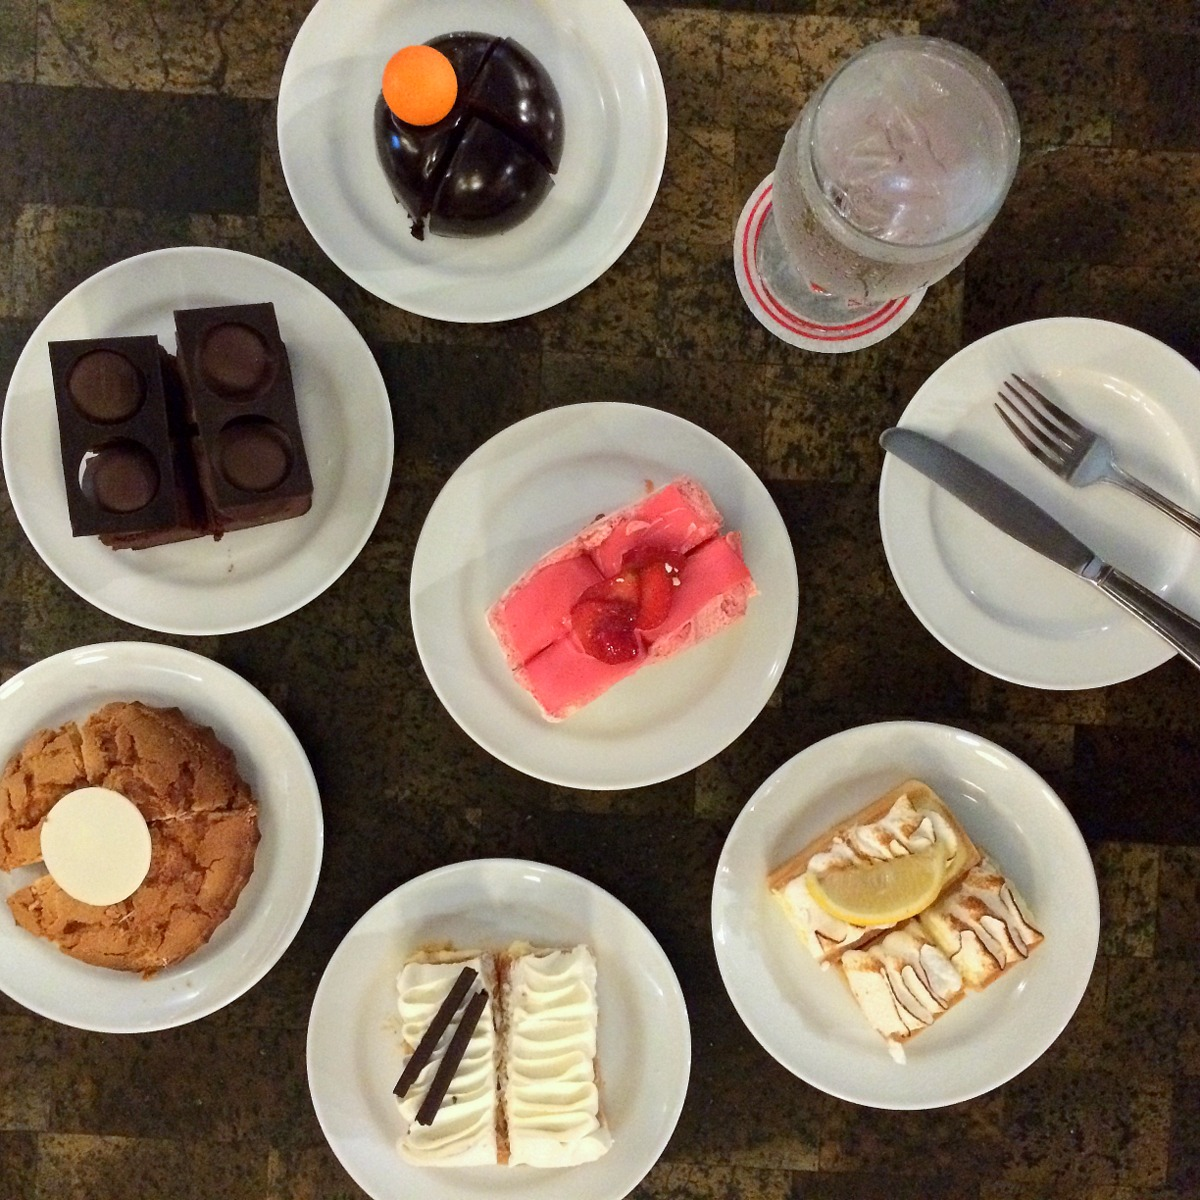 New pastries and desserts available at Madeleine